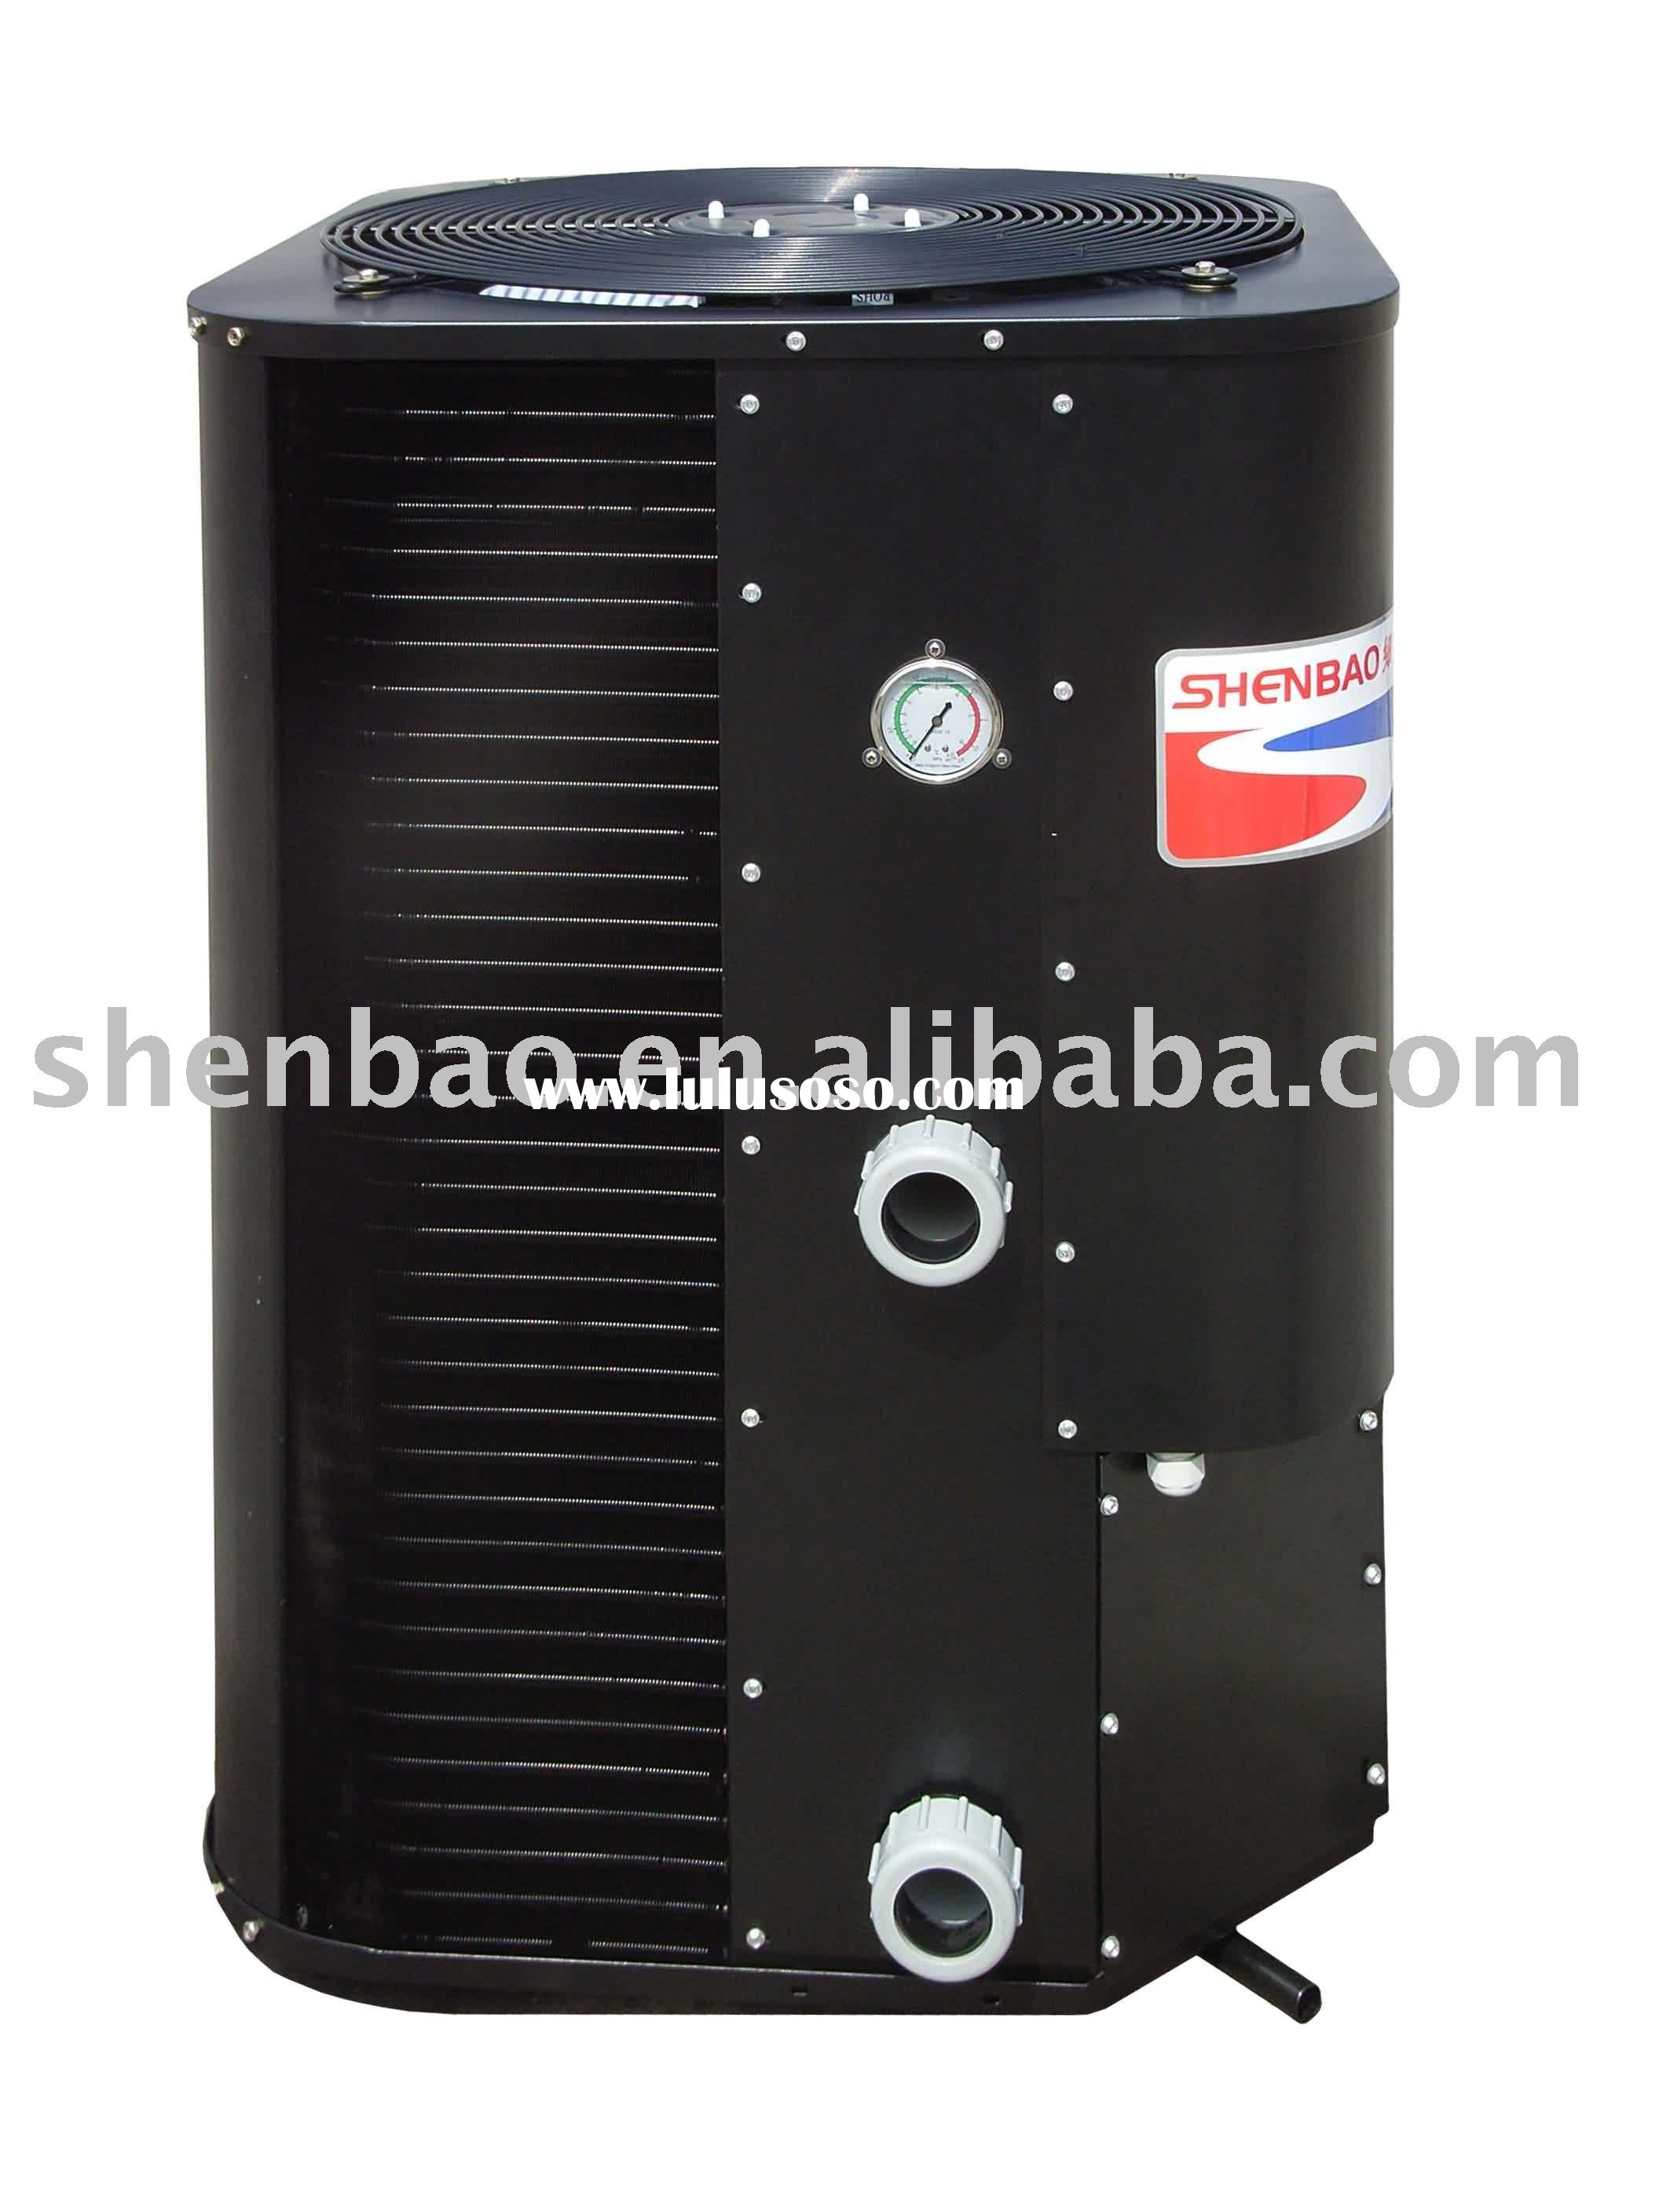 2010 Swimming Pool Chiller Heat Pump Cooling Heating For Sale Price China Manufacturer